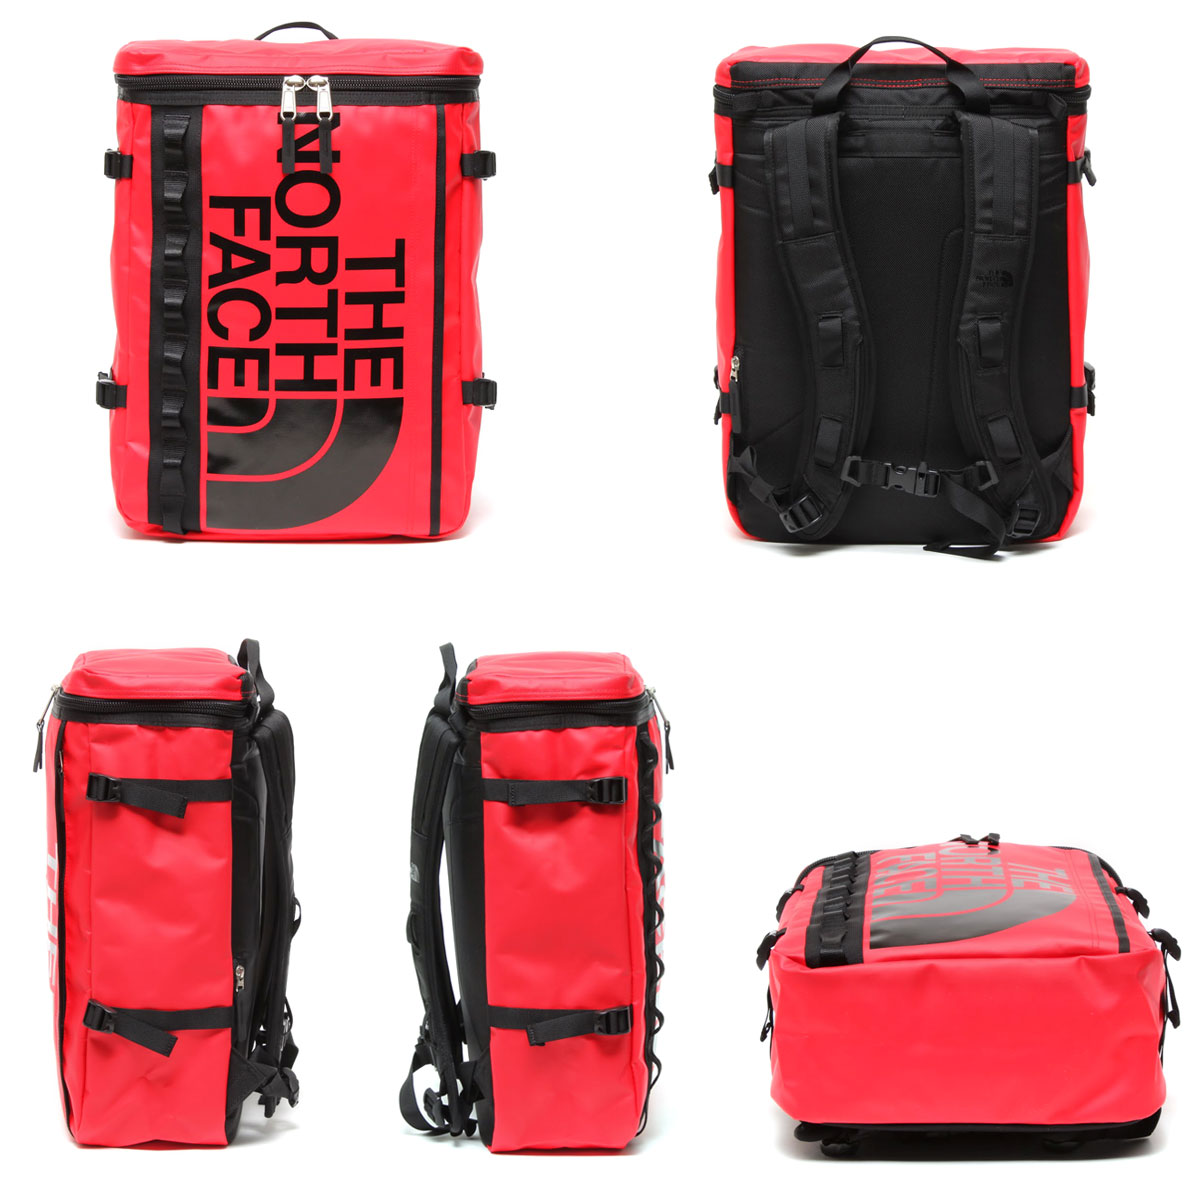 nm81357 4?fitin=330 330 kinetics rakuten global market the north face bc fuse box (7 north face base camp fuse box backpack at gsmx.co